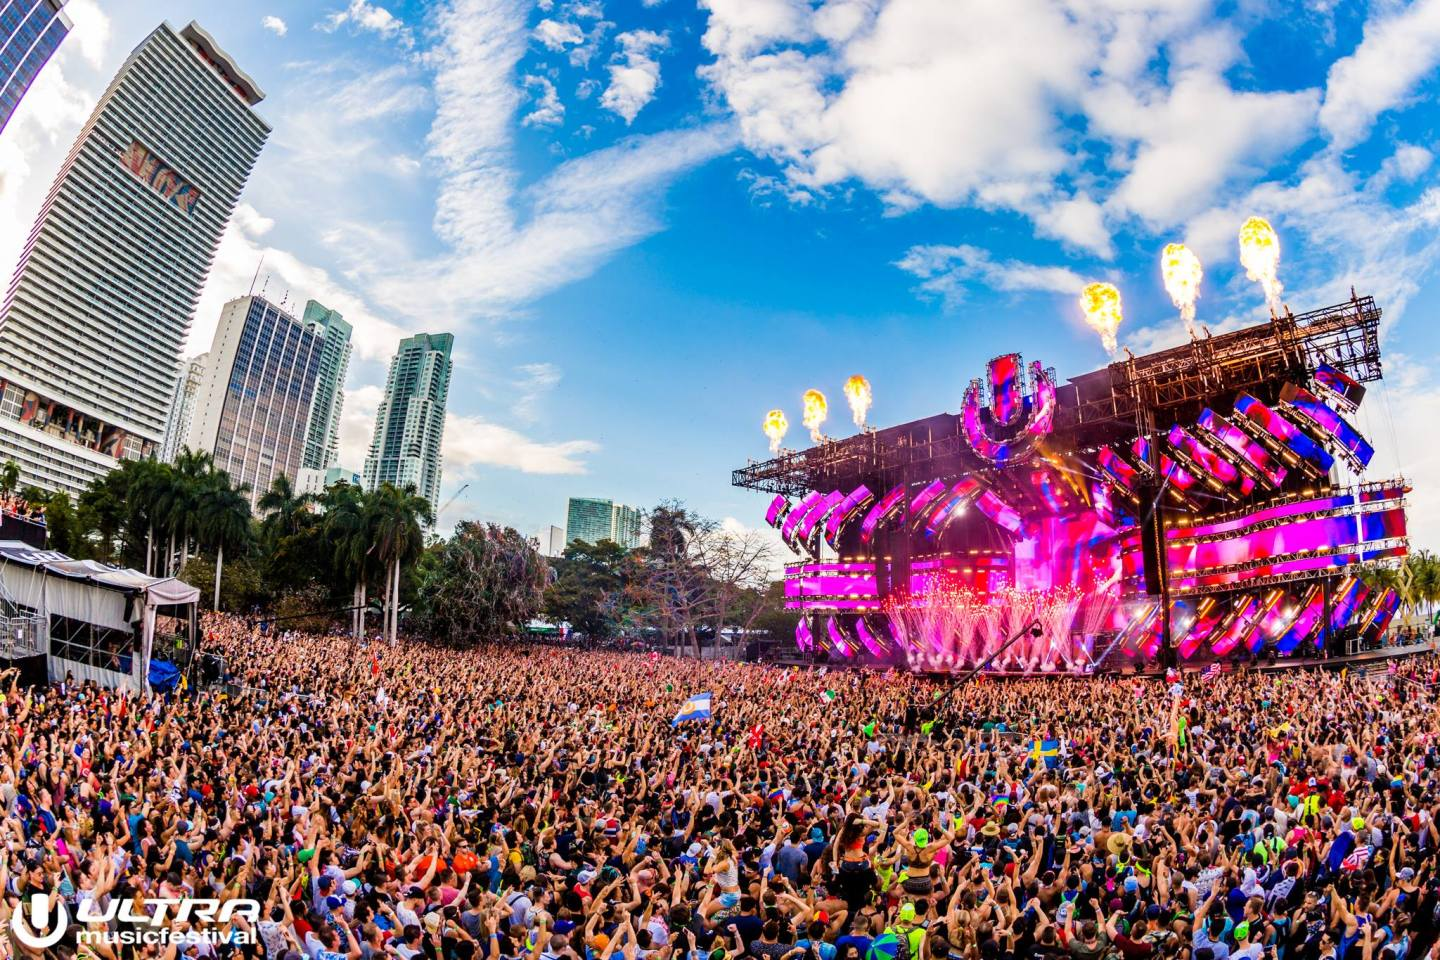 Ultra Music Festival main stage crowd view - Bayfront Park Downtown Miami